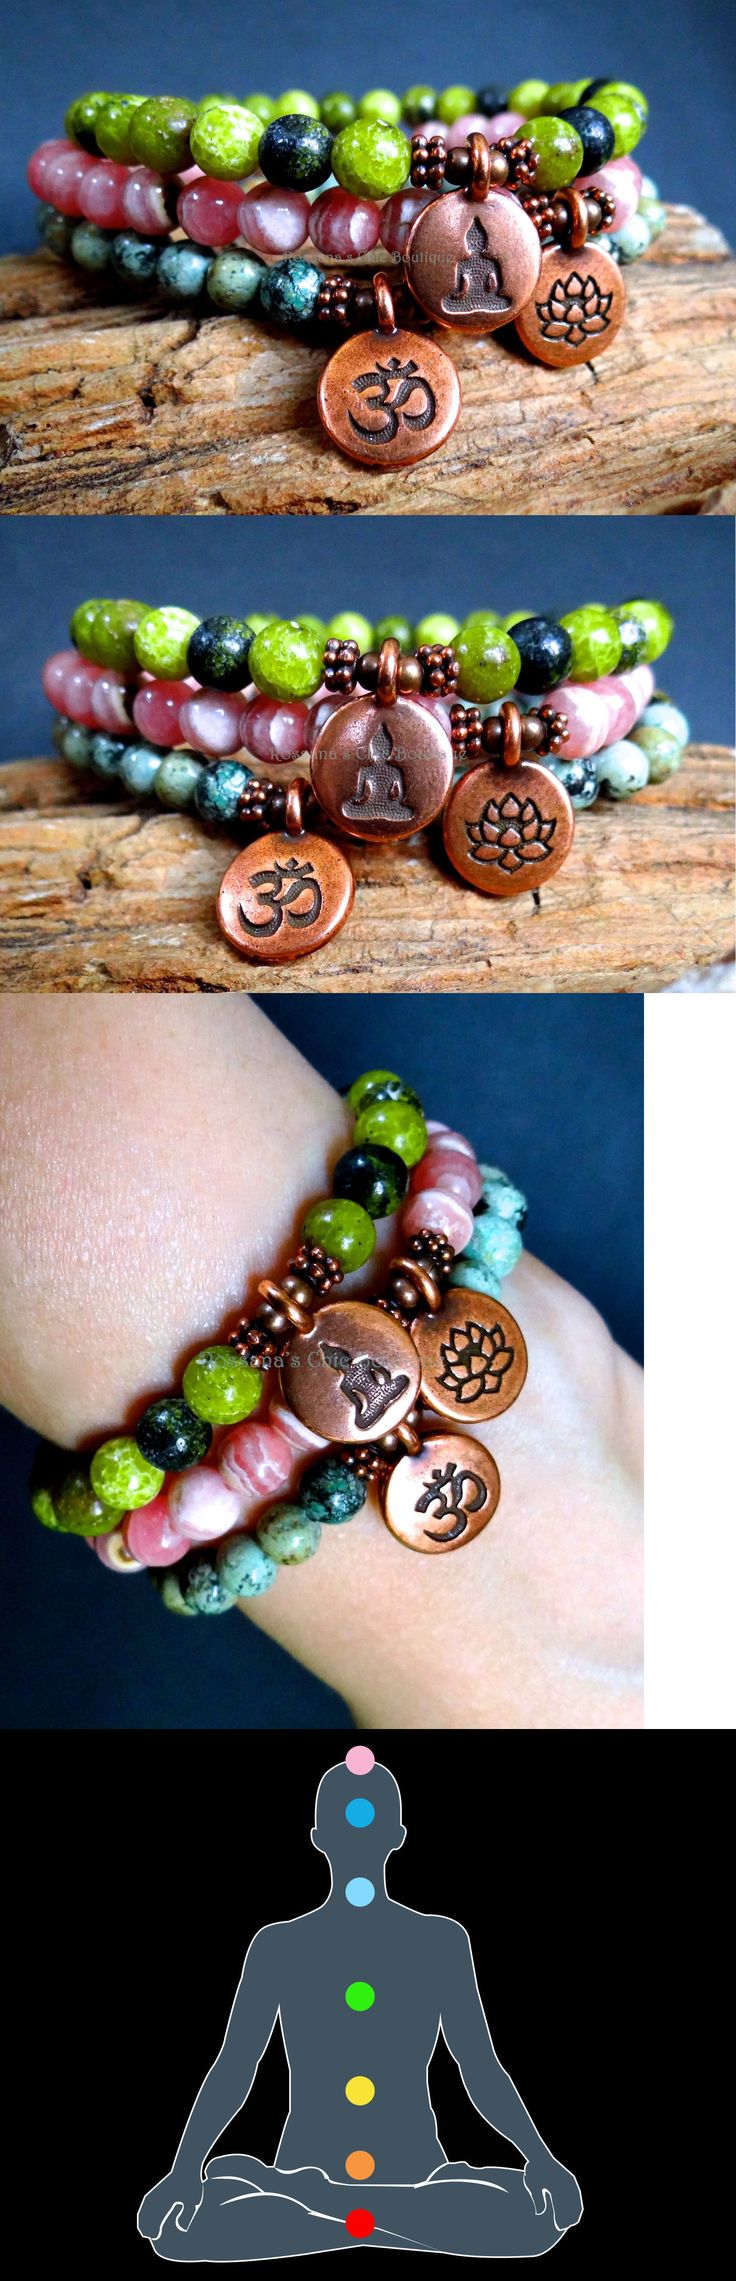 Bracelets 98483: Set Bracelets African Turquoise, Rhodochrosite With Copper Buddha, Lotus And Om -> BUY IT NOW ONLY: $42 on eBay!